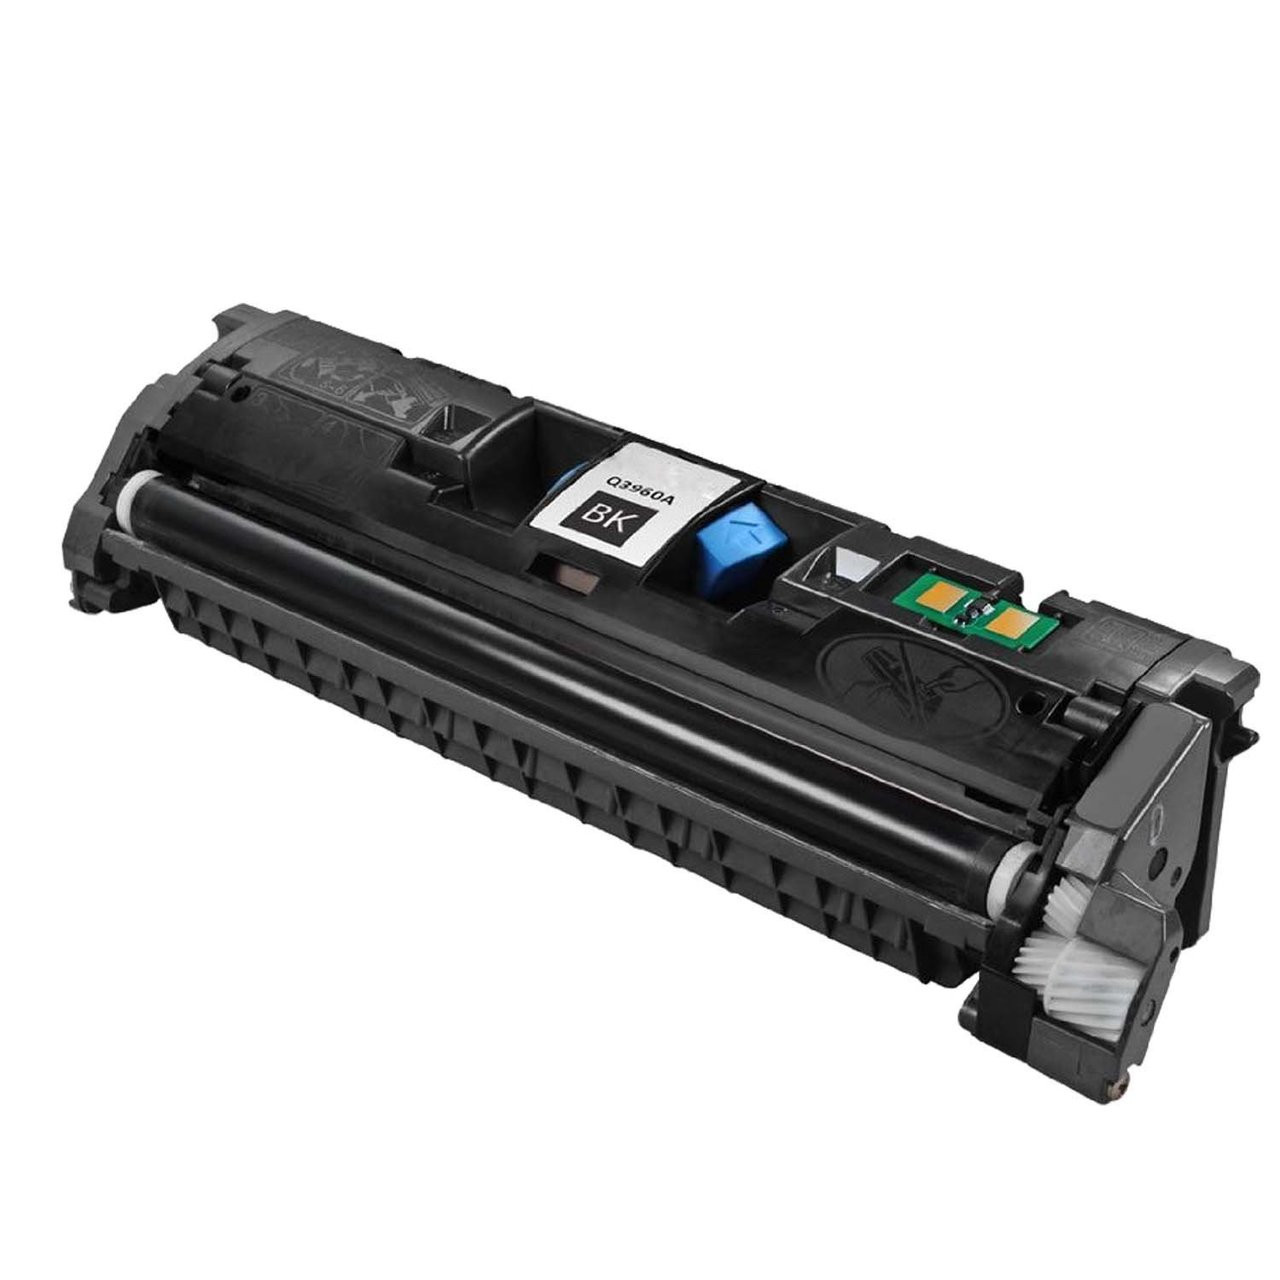 HP LASERJET 2550N PRINTER DOWNLOAD DRIVERS